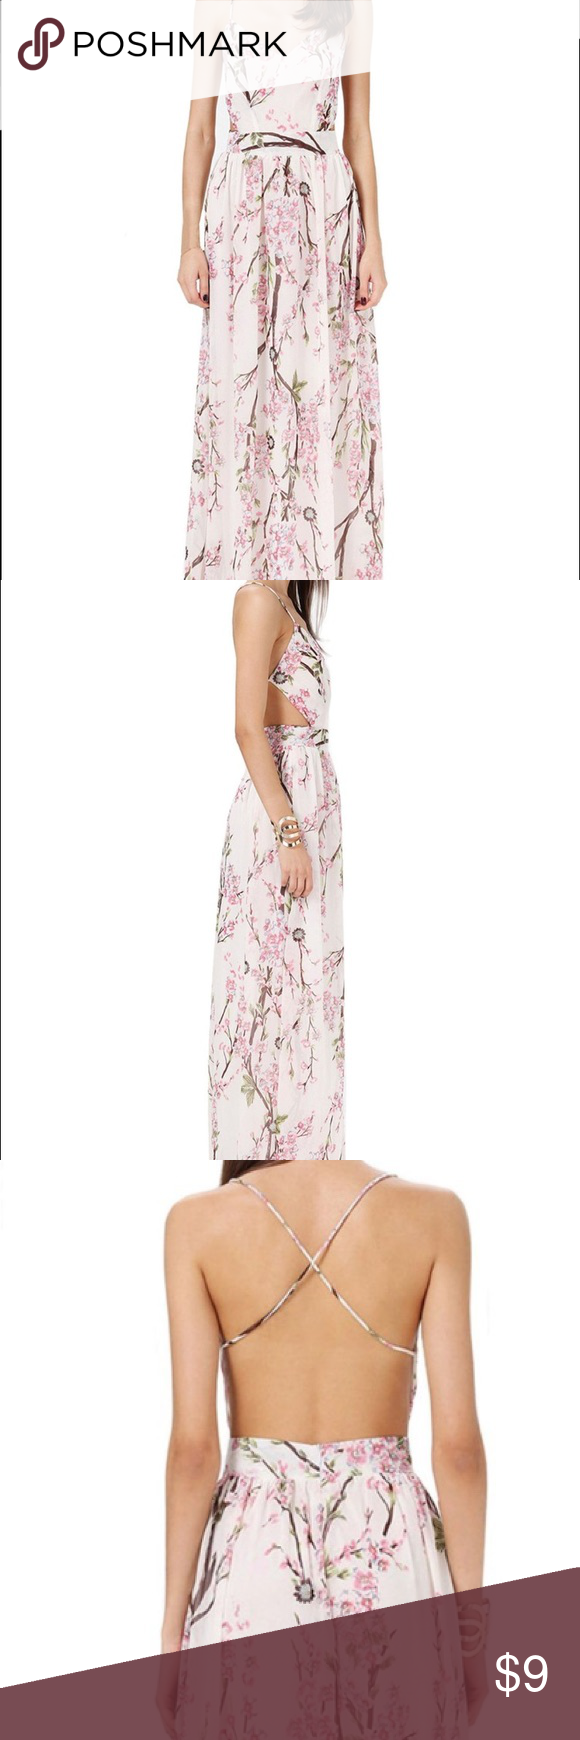 Cherry Blossom Backless Maxi Dress Very Pretty Flowy Maxi Dress, spaghetti strap backless and floral print - super girly and great for summer! Fits like a Small, never worn Sheinside Dresses Maxi